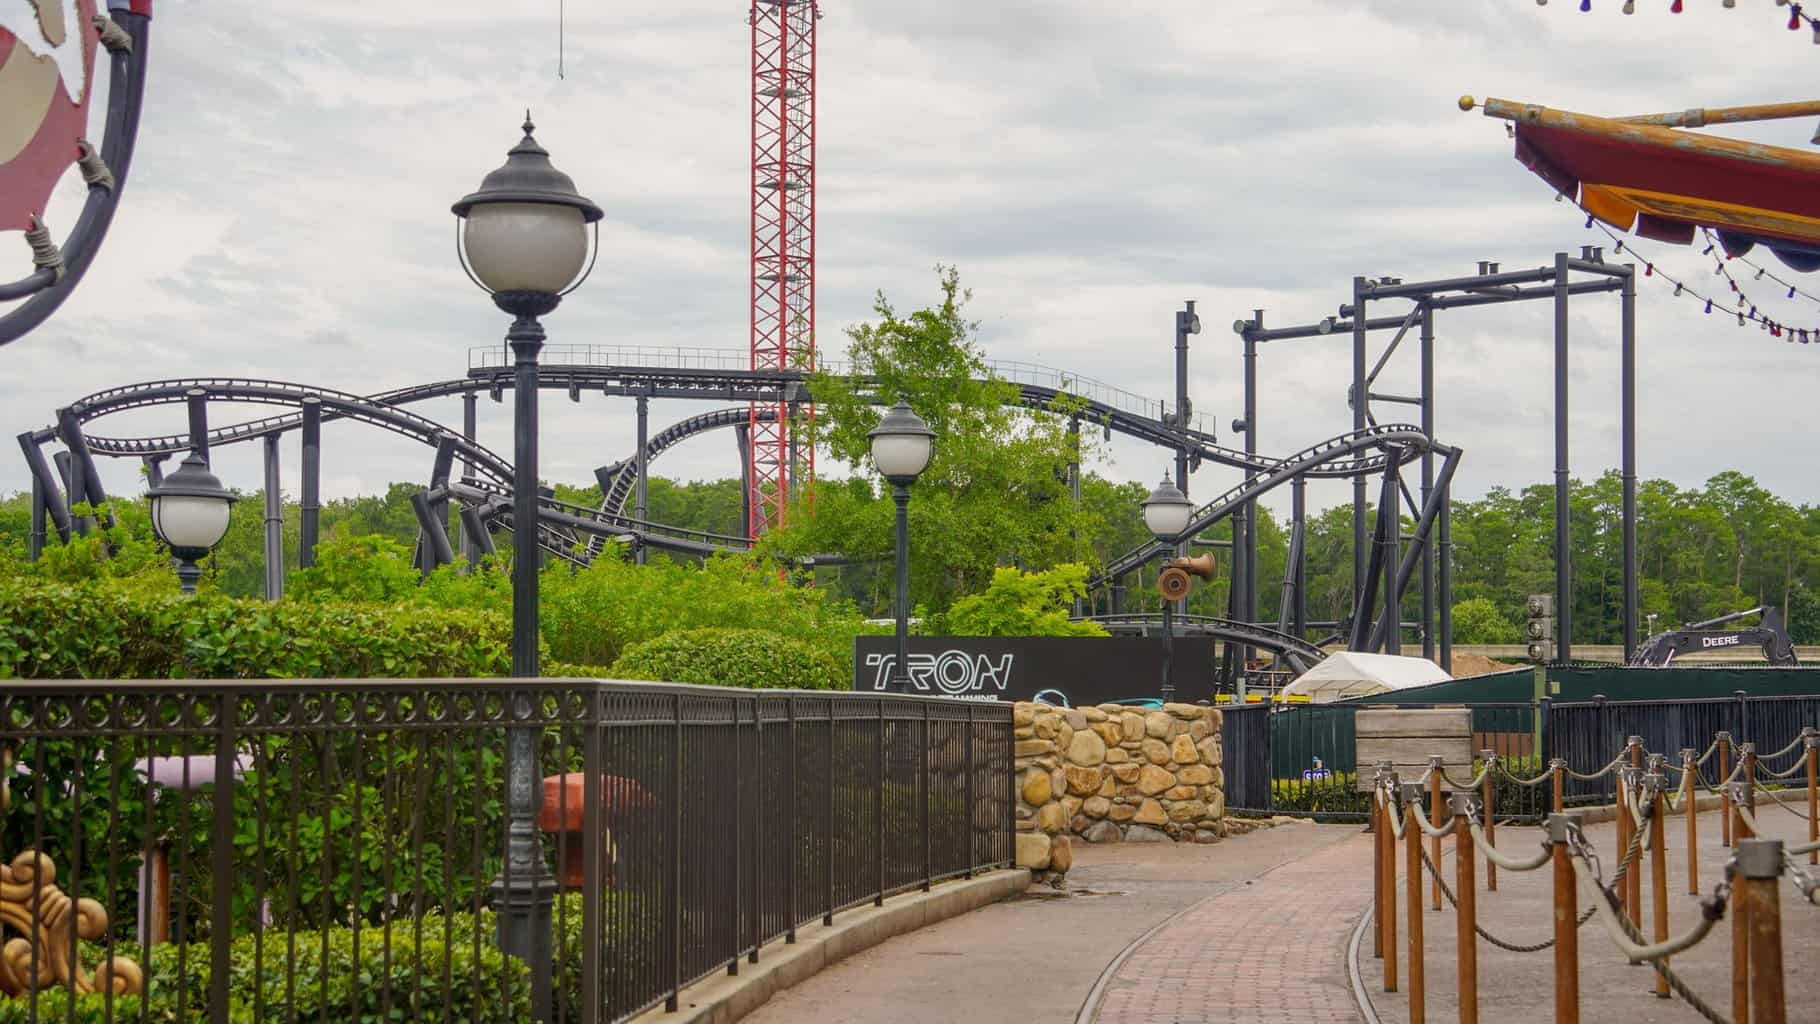 TRON Roller Coaster Construction Update June 2019  from Fantasyland